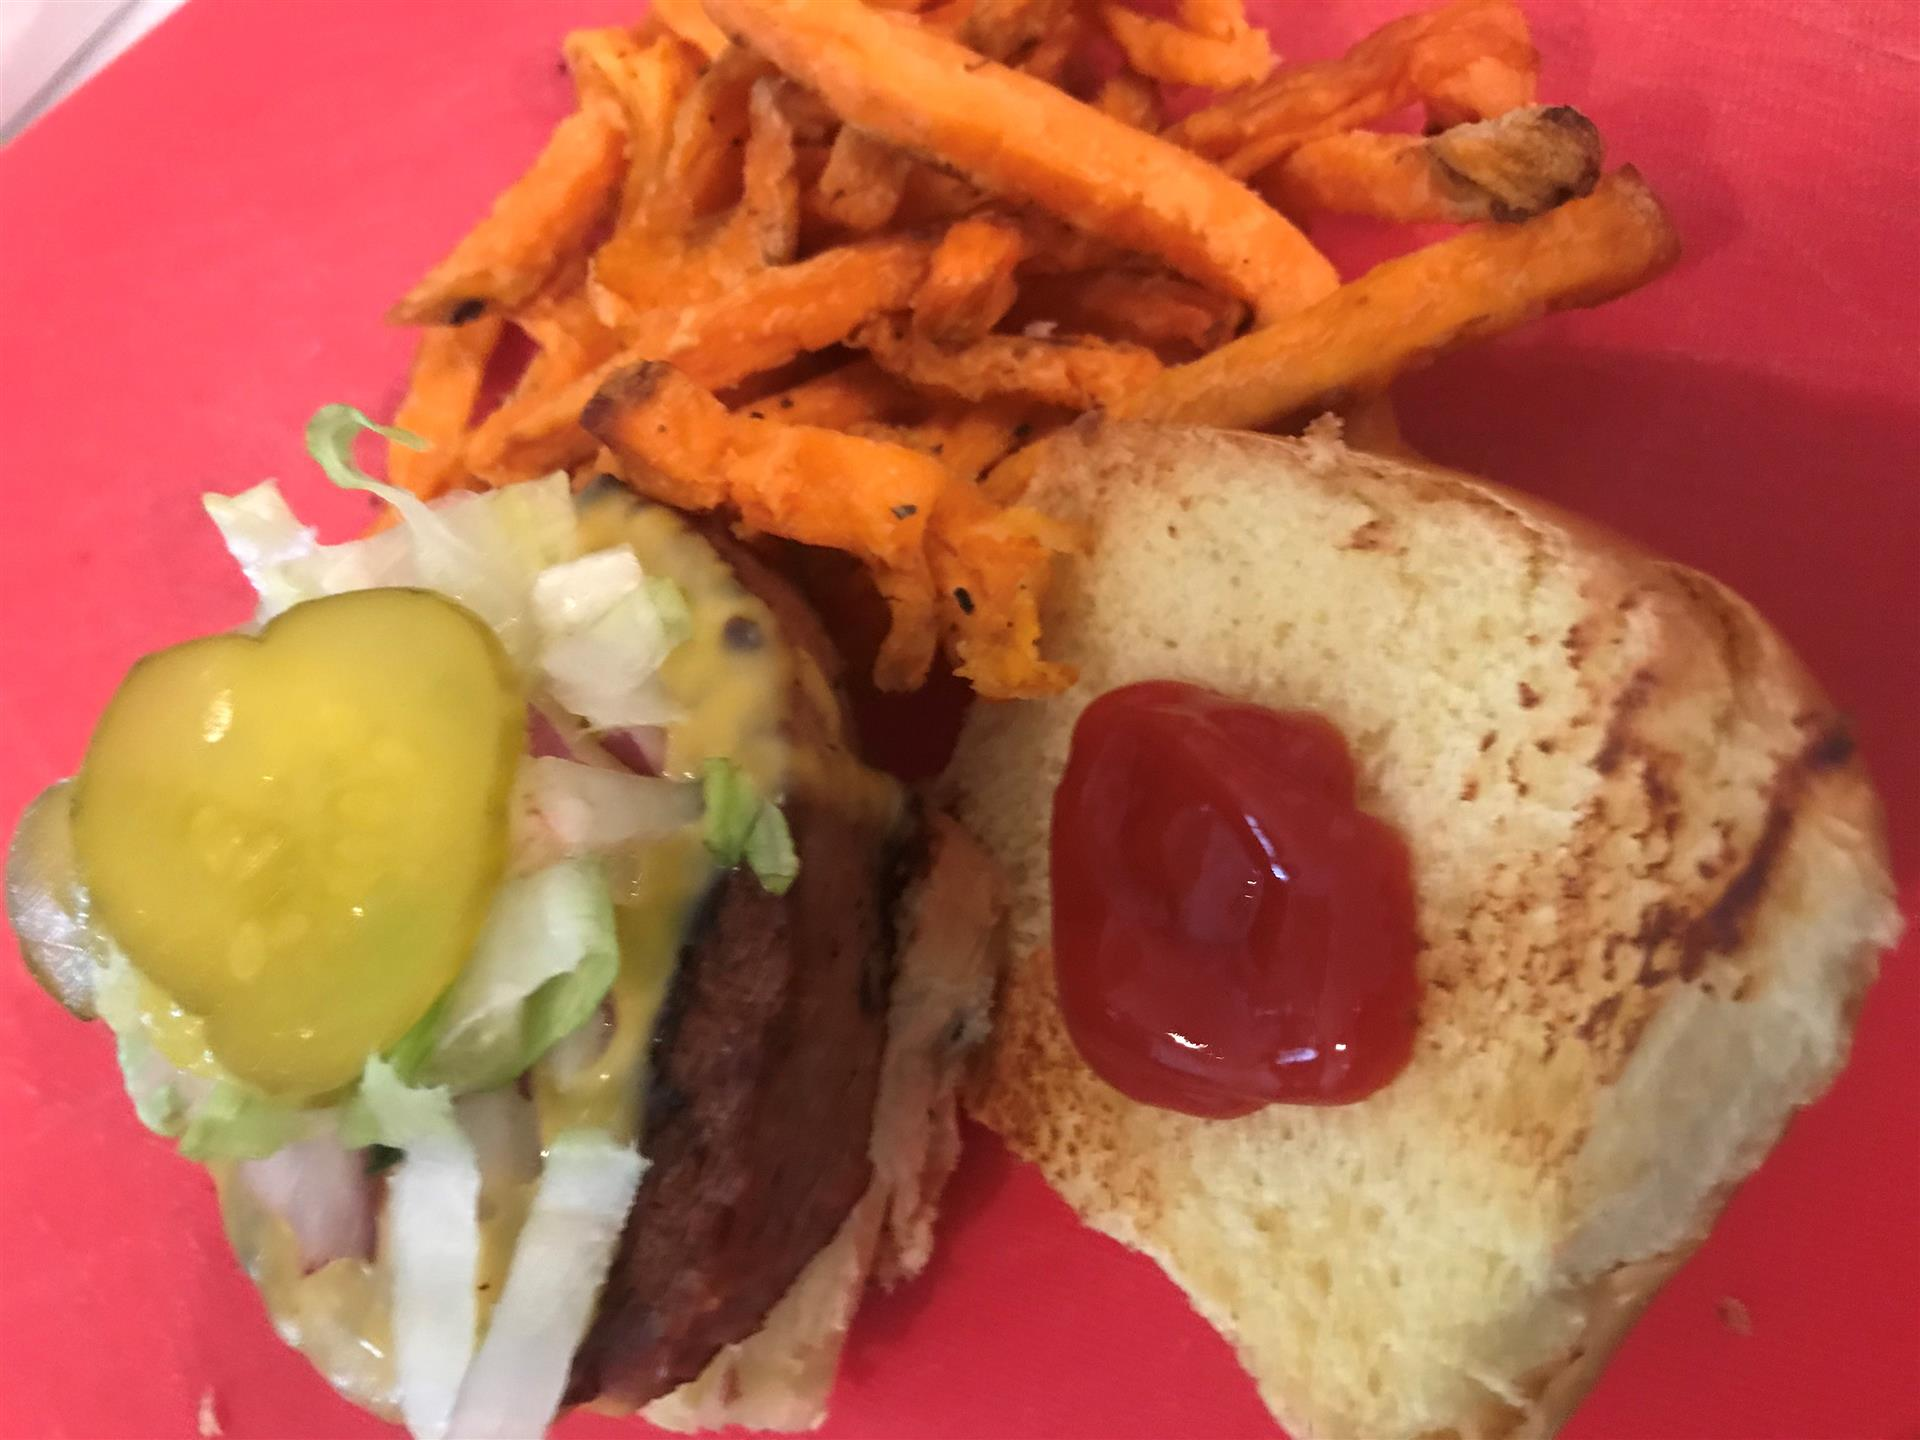 beyond burger with pickles and ketchup with a side of sweet potato fries & a snapple